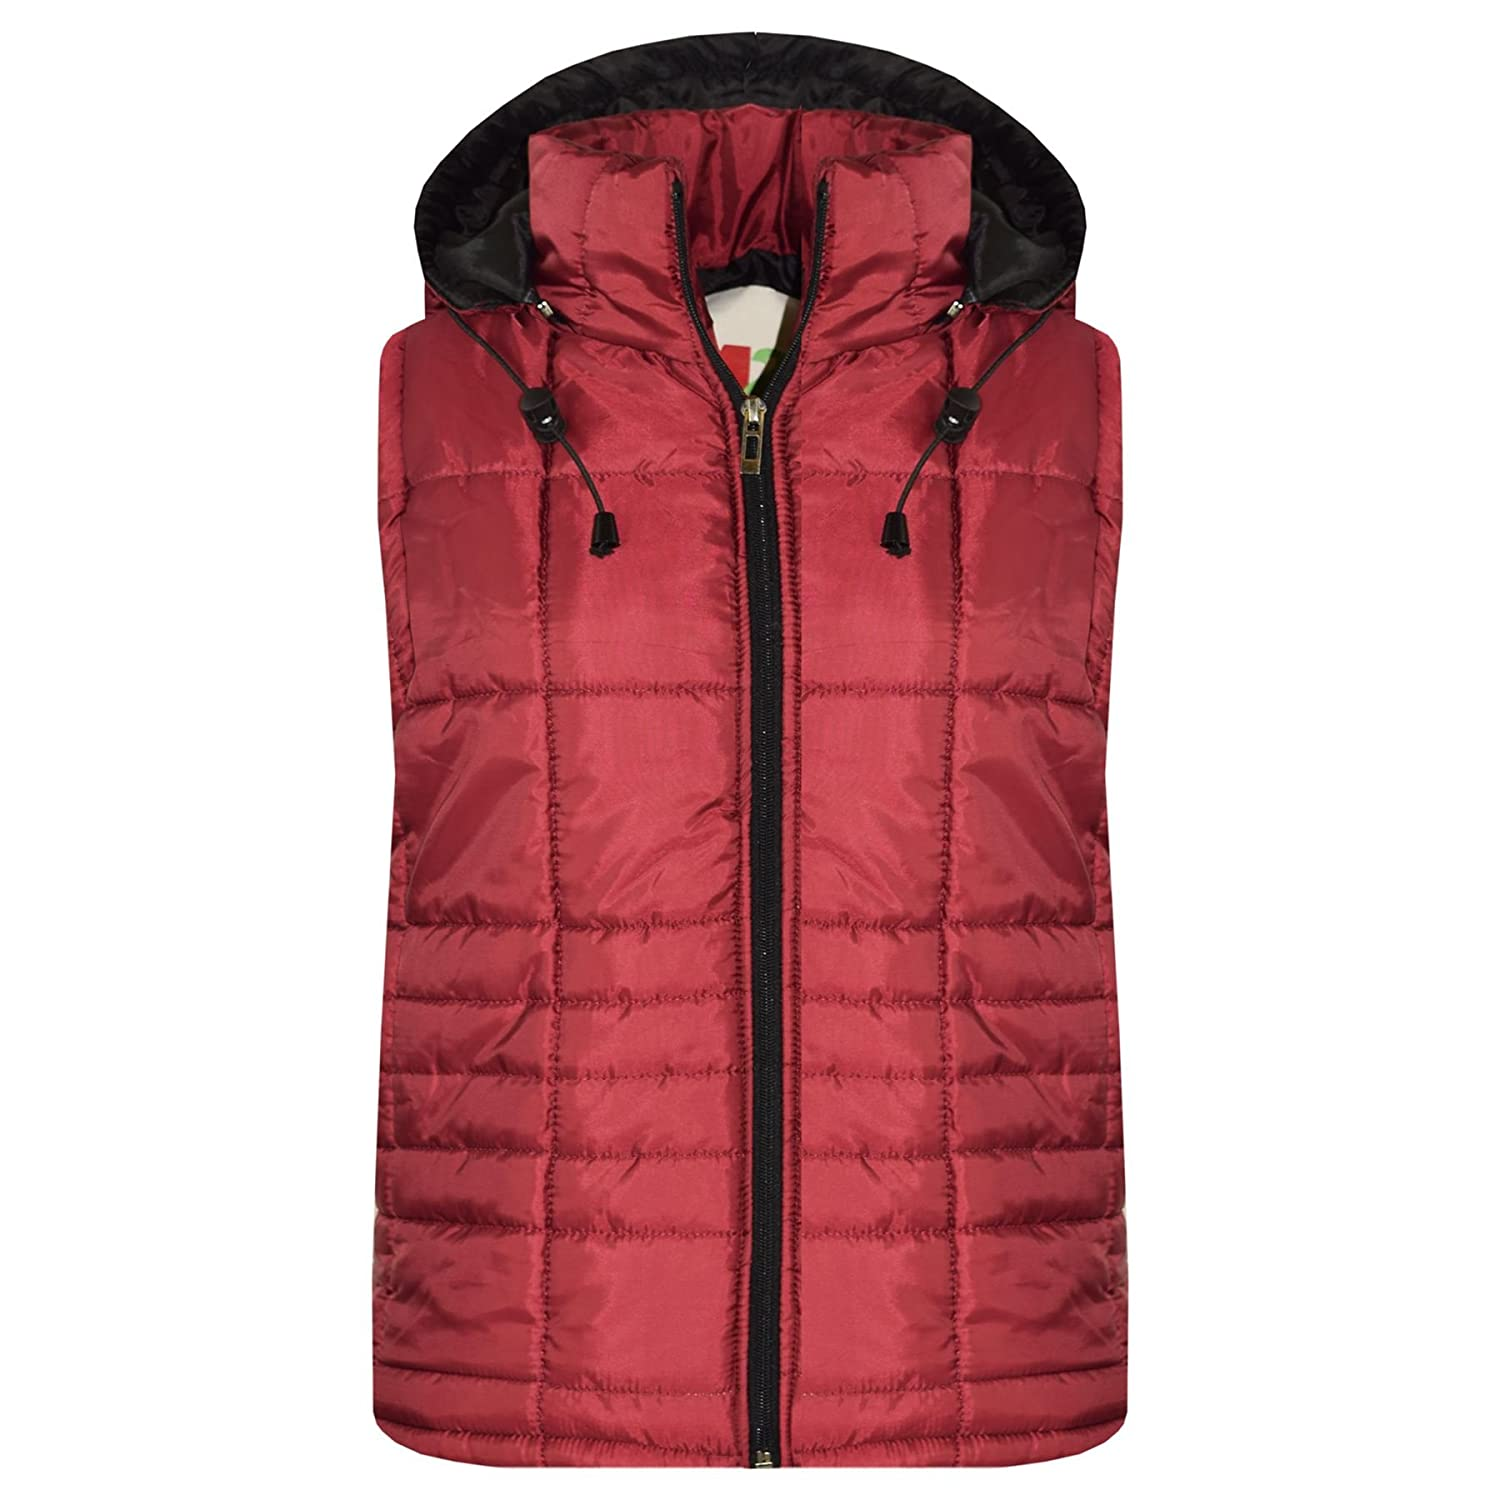 A2Z 4 Kids® Kids Girls Boys Designer's Wine Sleeveless Hooded Padded Quilted Lined Gilet Bodywarmer Fashion Jackets Age 5 6 7 8 9 10 11 12 13 Years